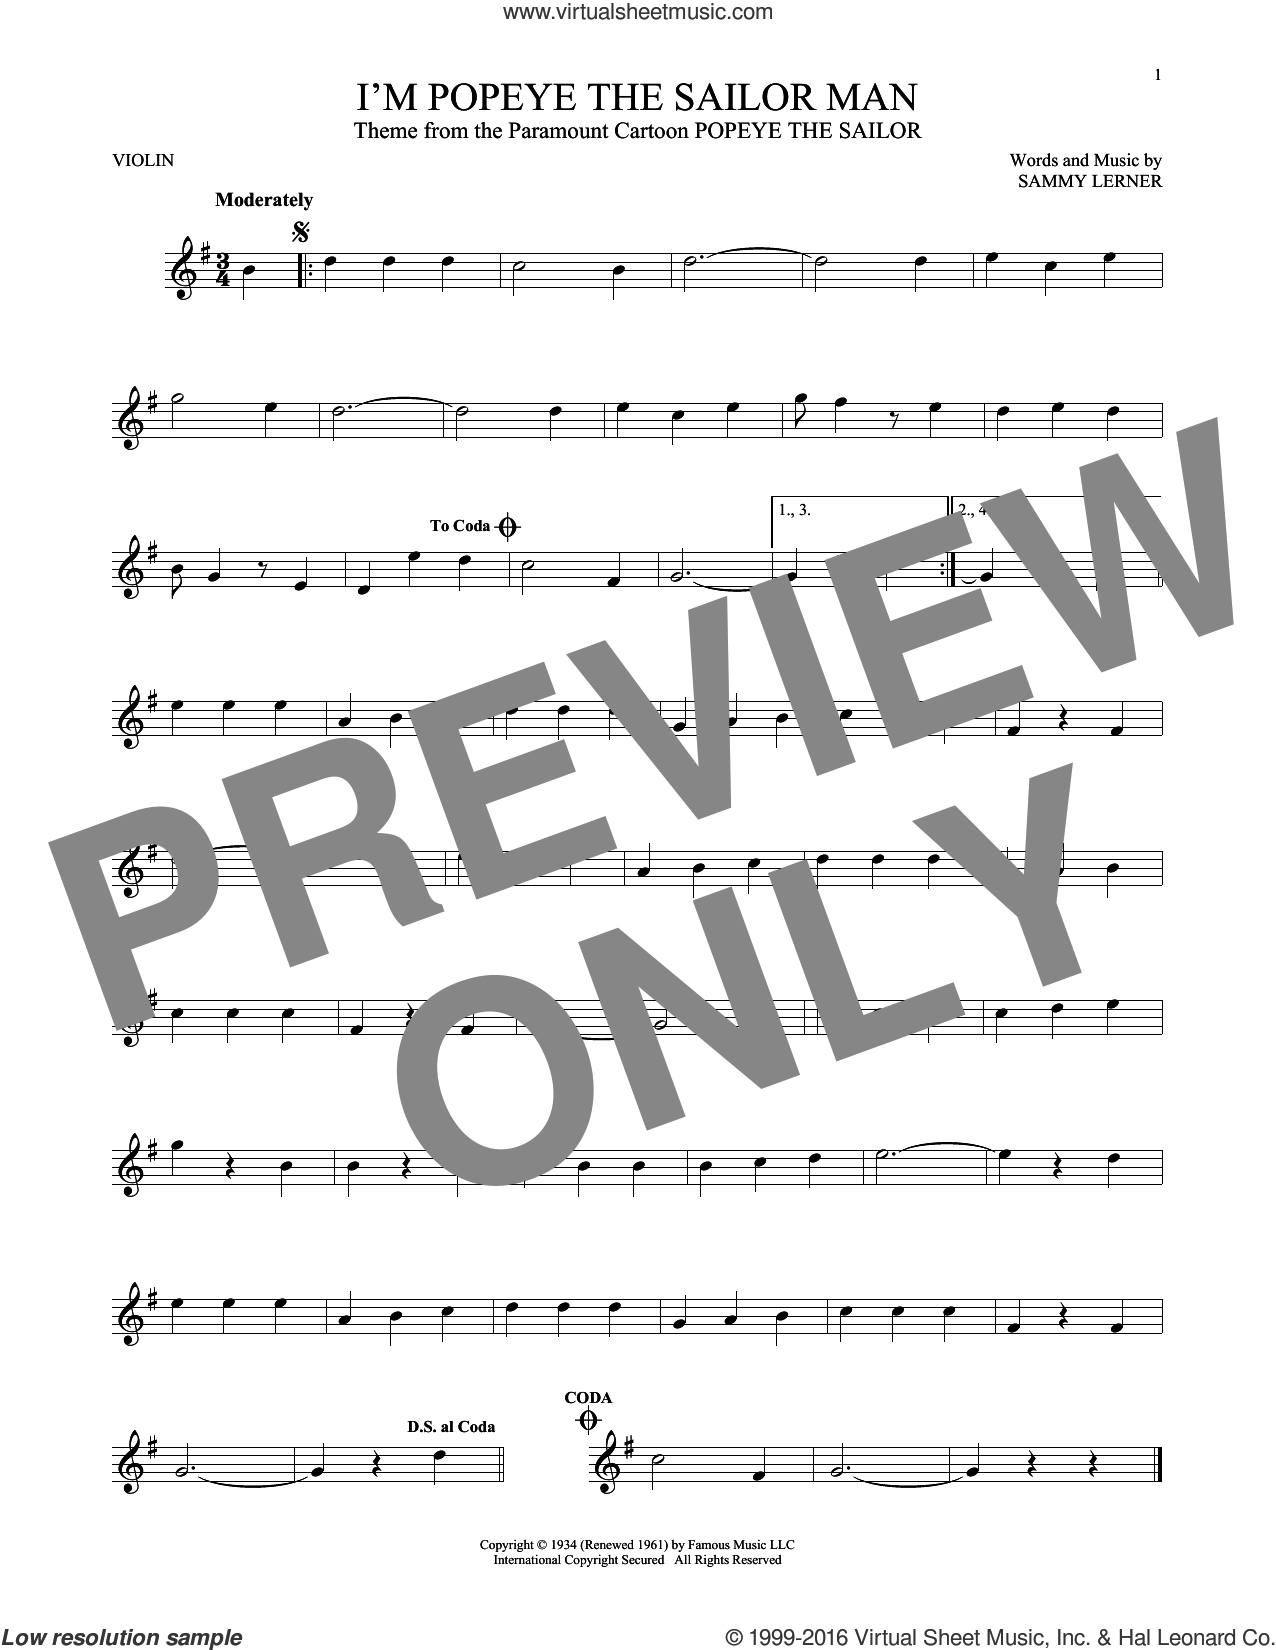 I'm Popeye The Sailor Man sheet music for violin solo by Sammy Lerner, intermediate skill level